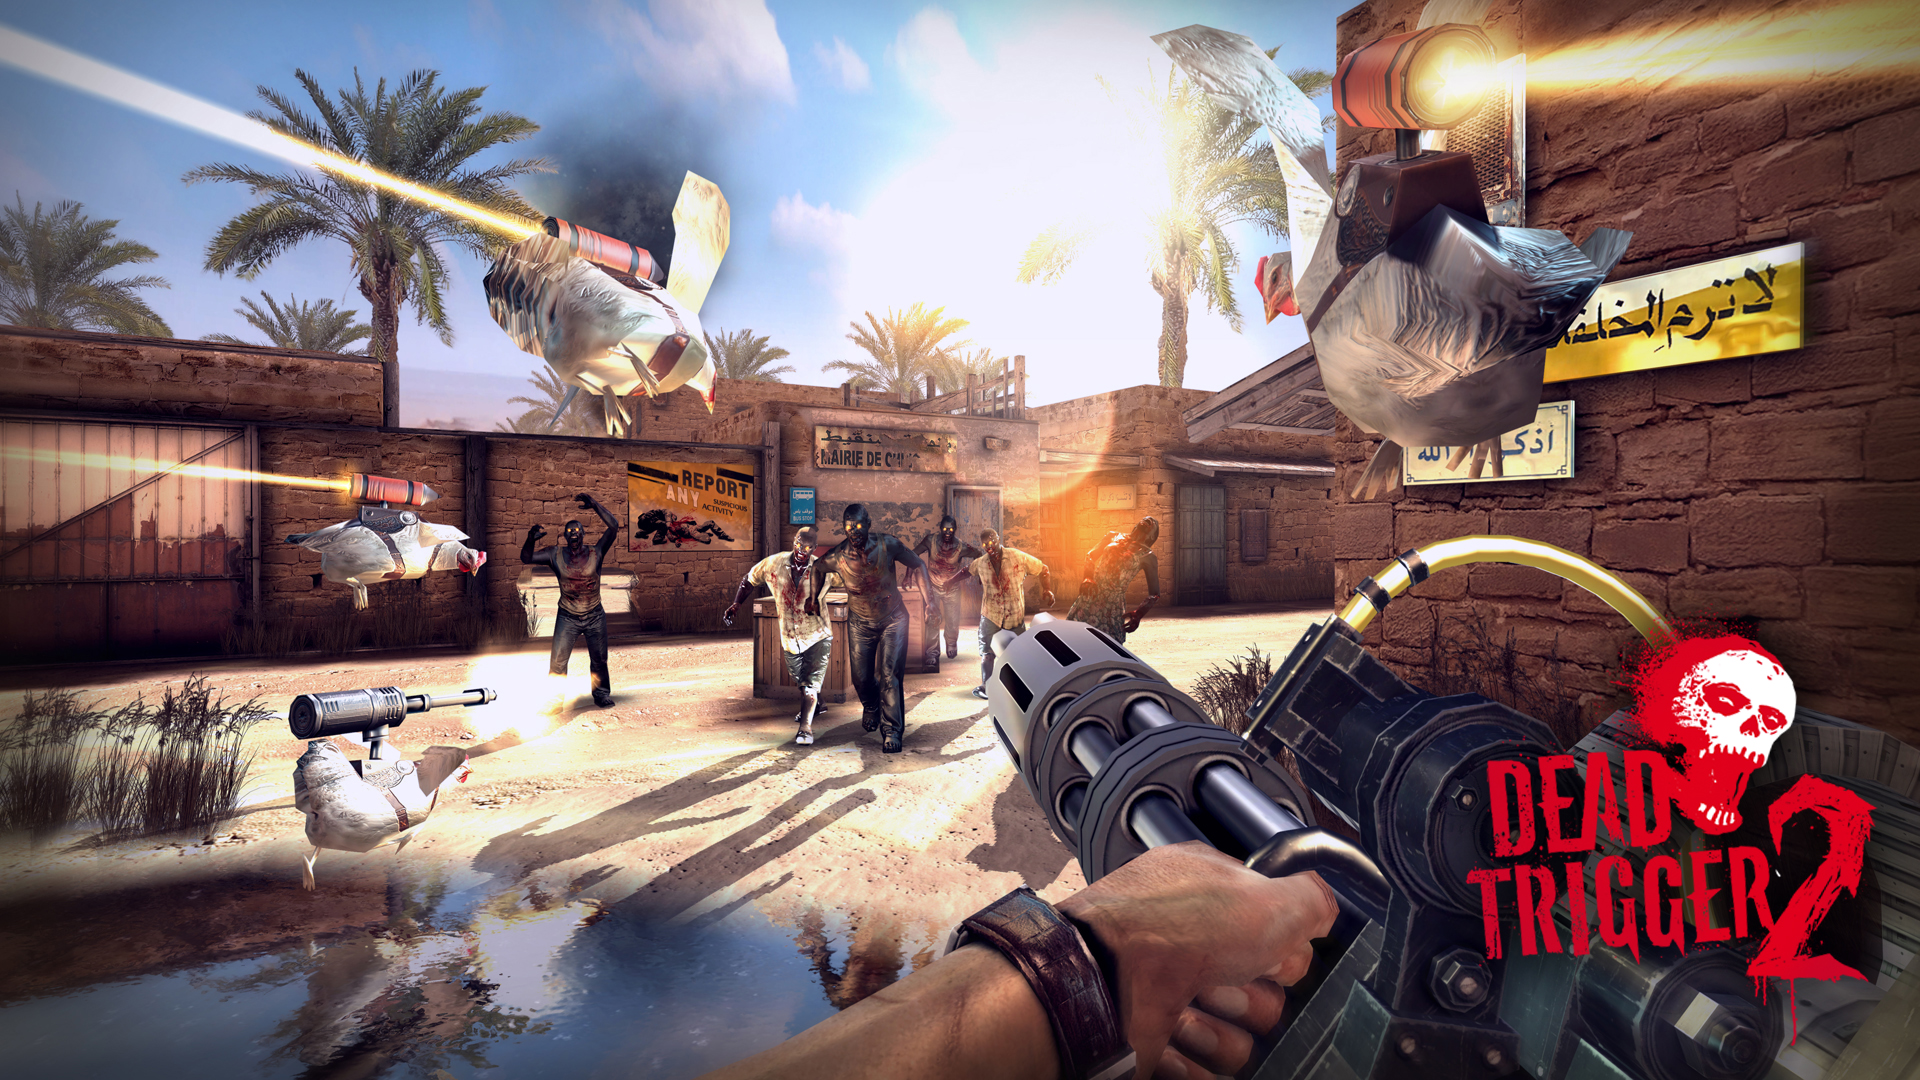 Dead Trigger 2 To Be Released On 23rd October